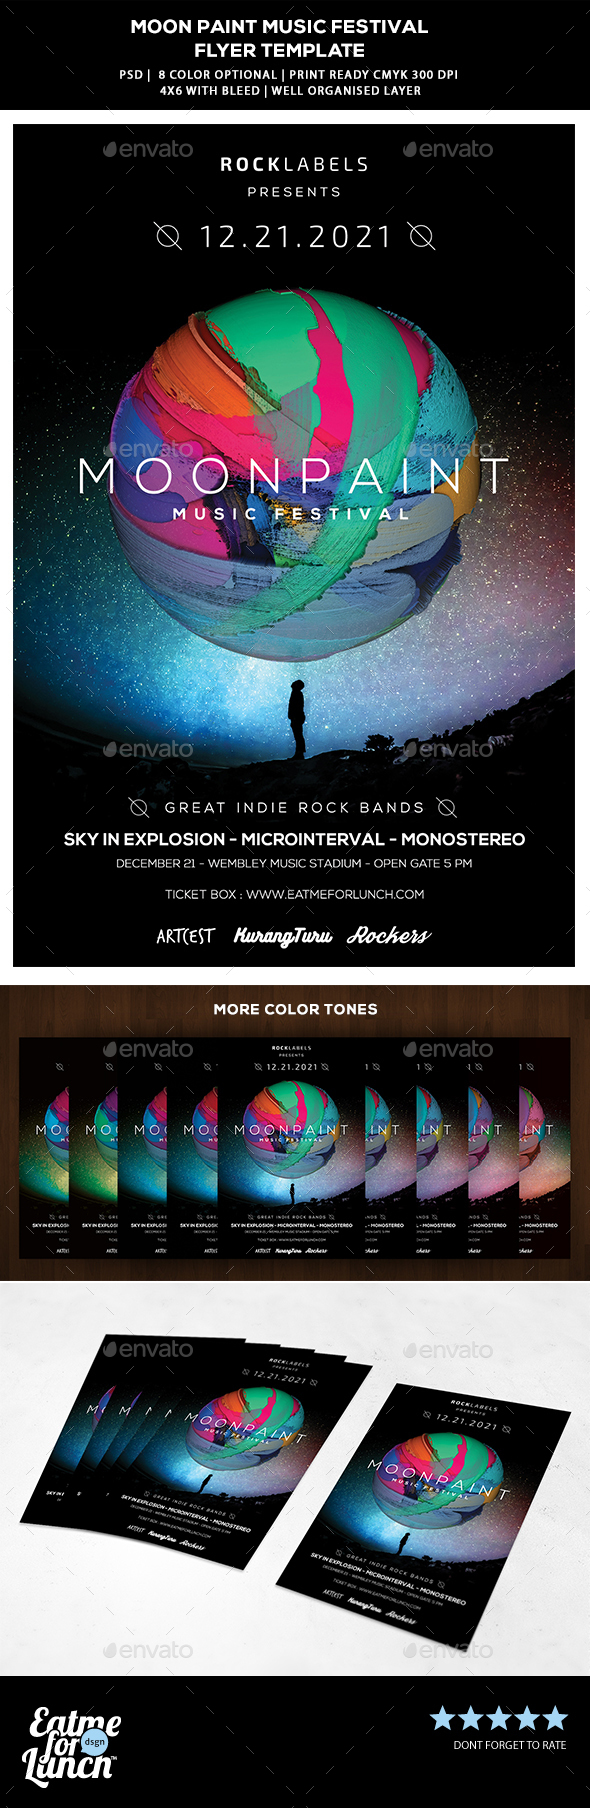 Abstract Music Festival Flyer - Moon Paint - Concerts Events